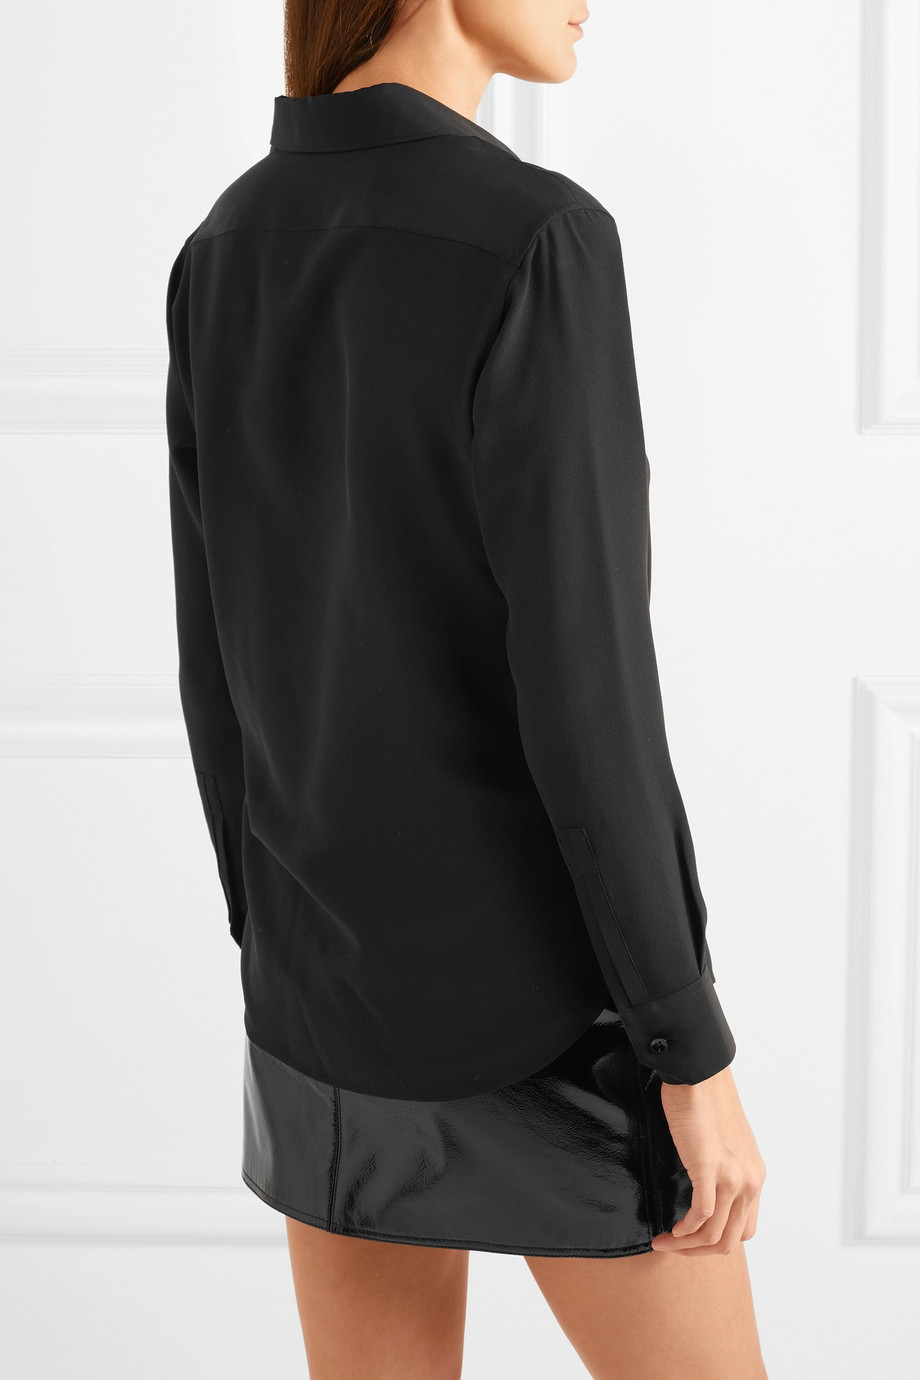 Crepe de chine blouse Saint Laurent buy Crepe de chine blouse Saint Laurent internet shop